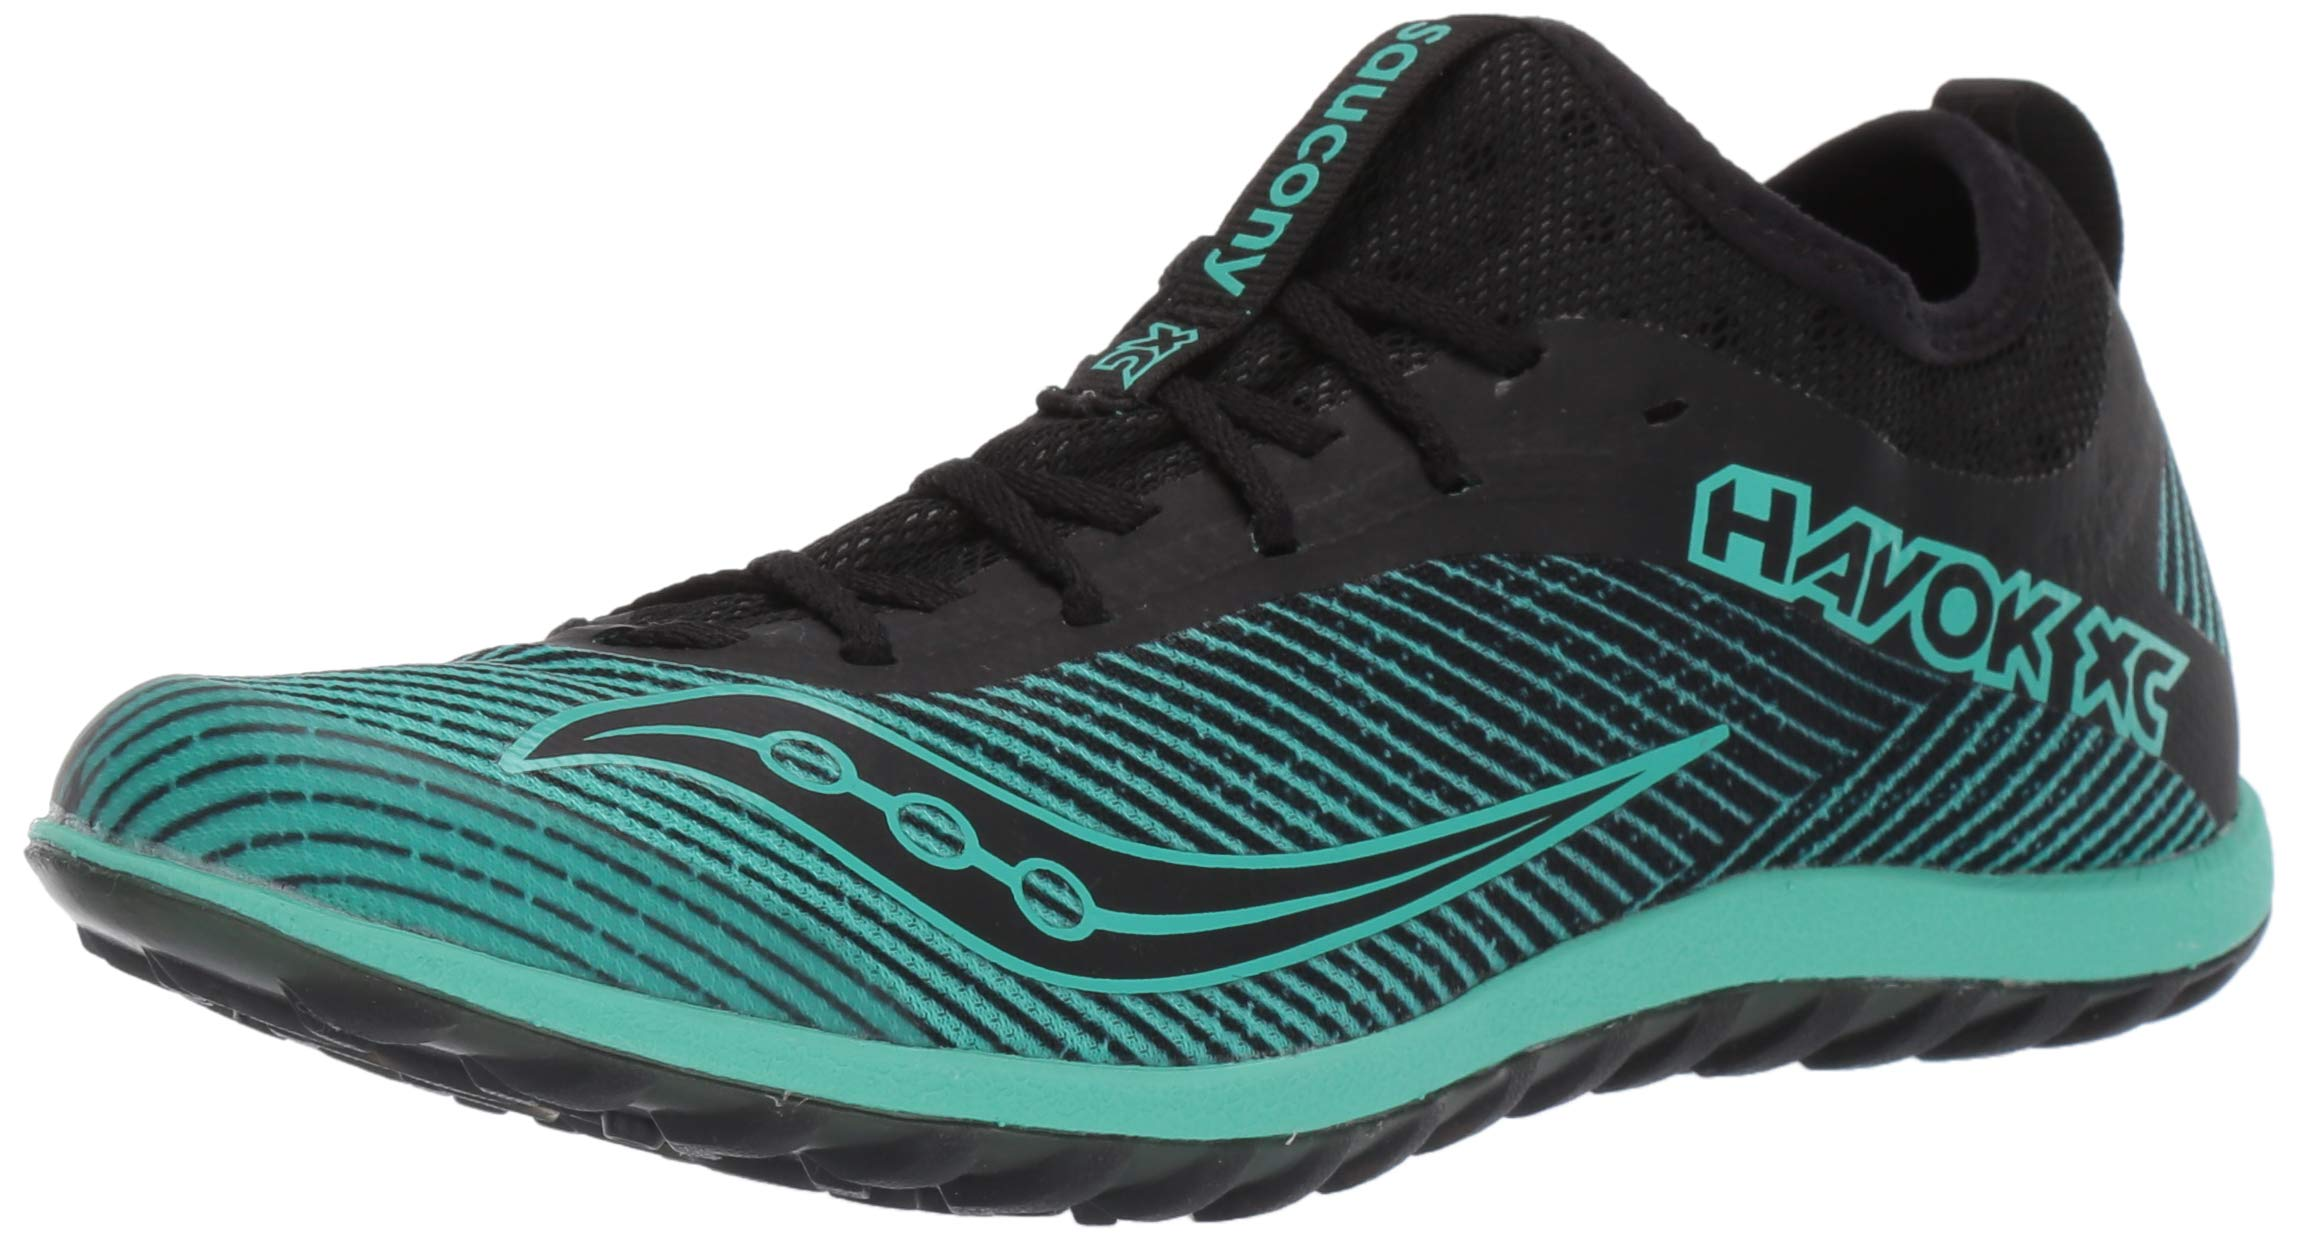 Saucony Women's Havok XC2 Flat Track and Field Shoe, Black/Green, 5.5 Medium US by Saucony